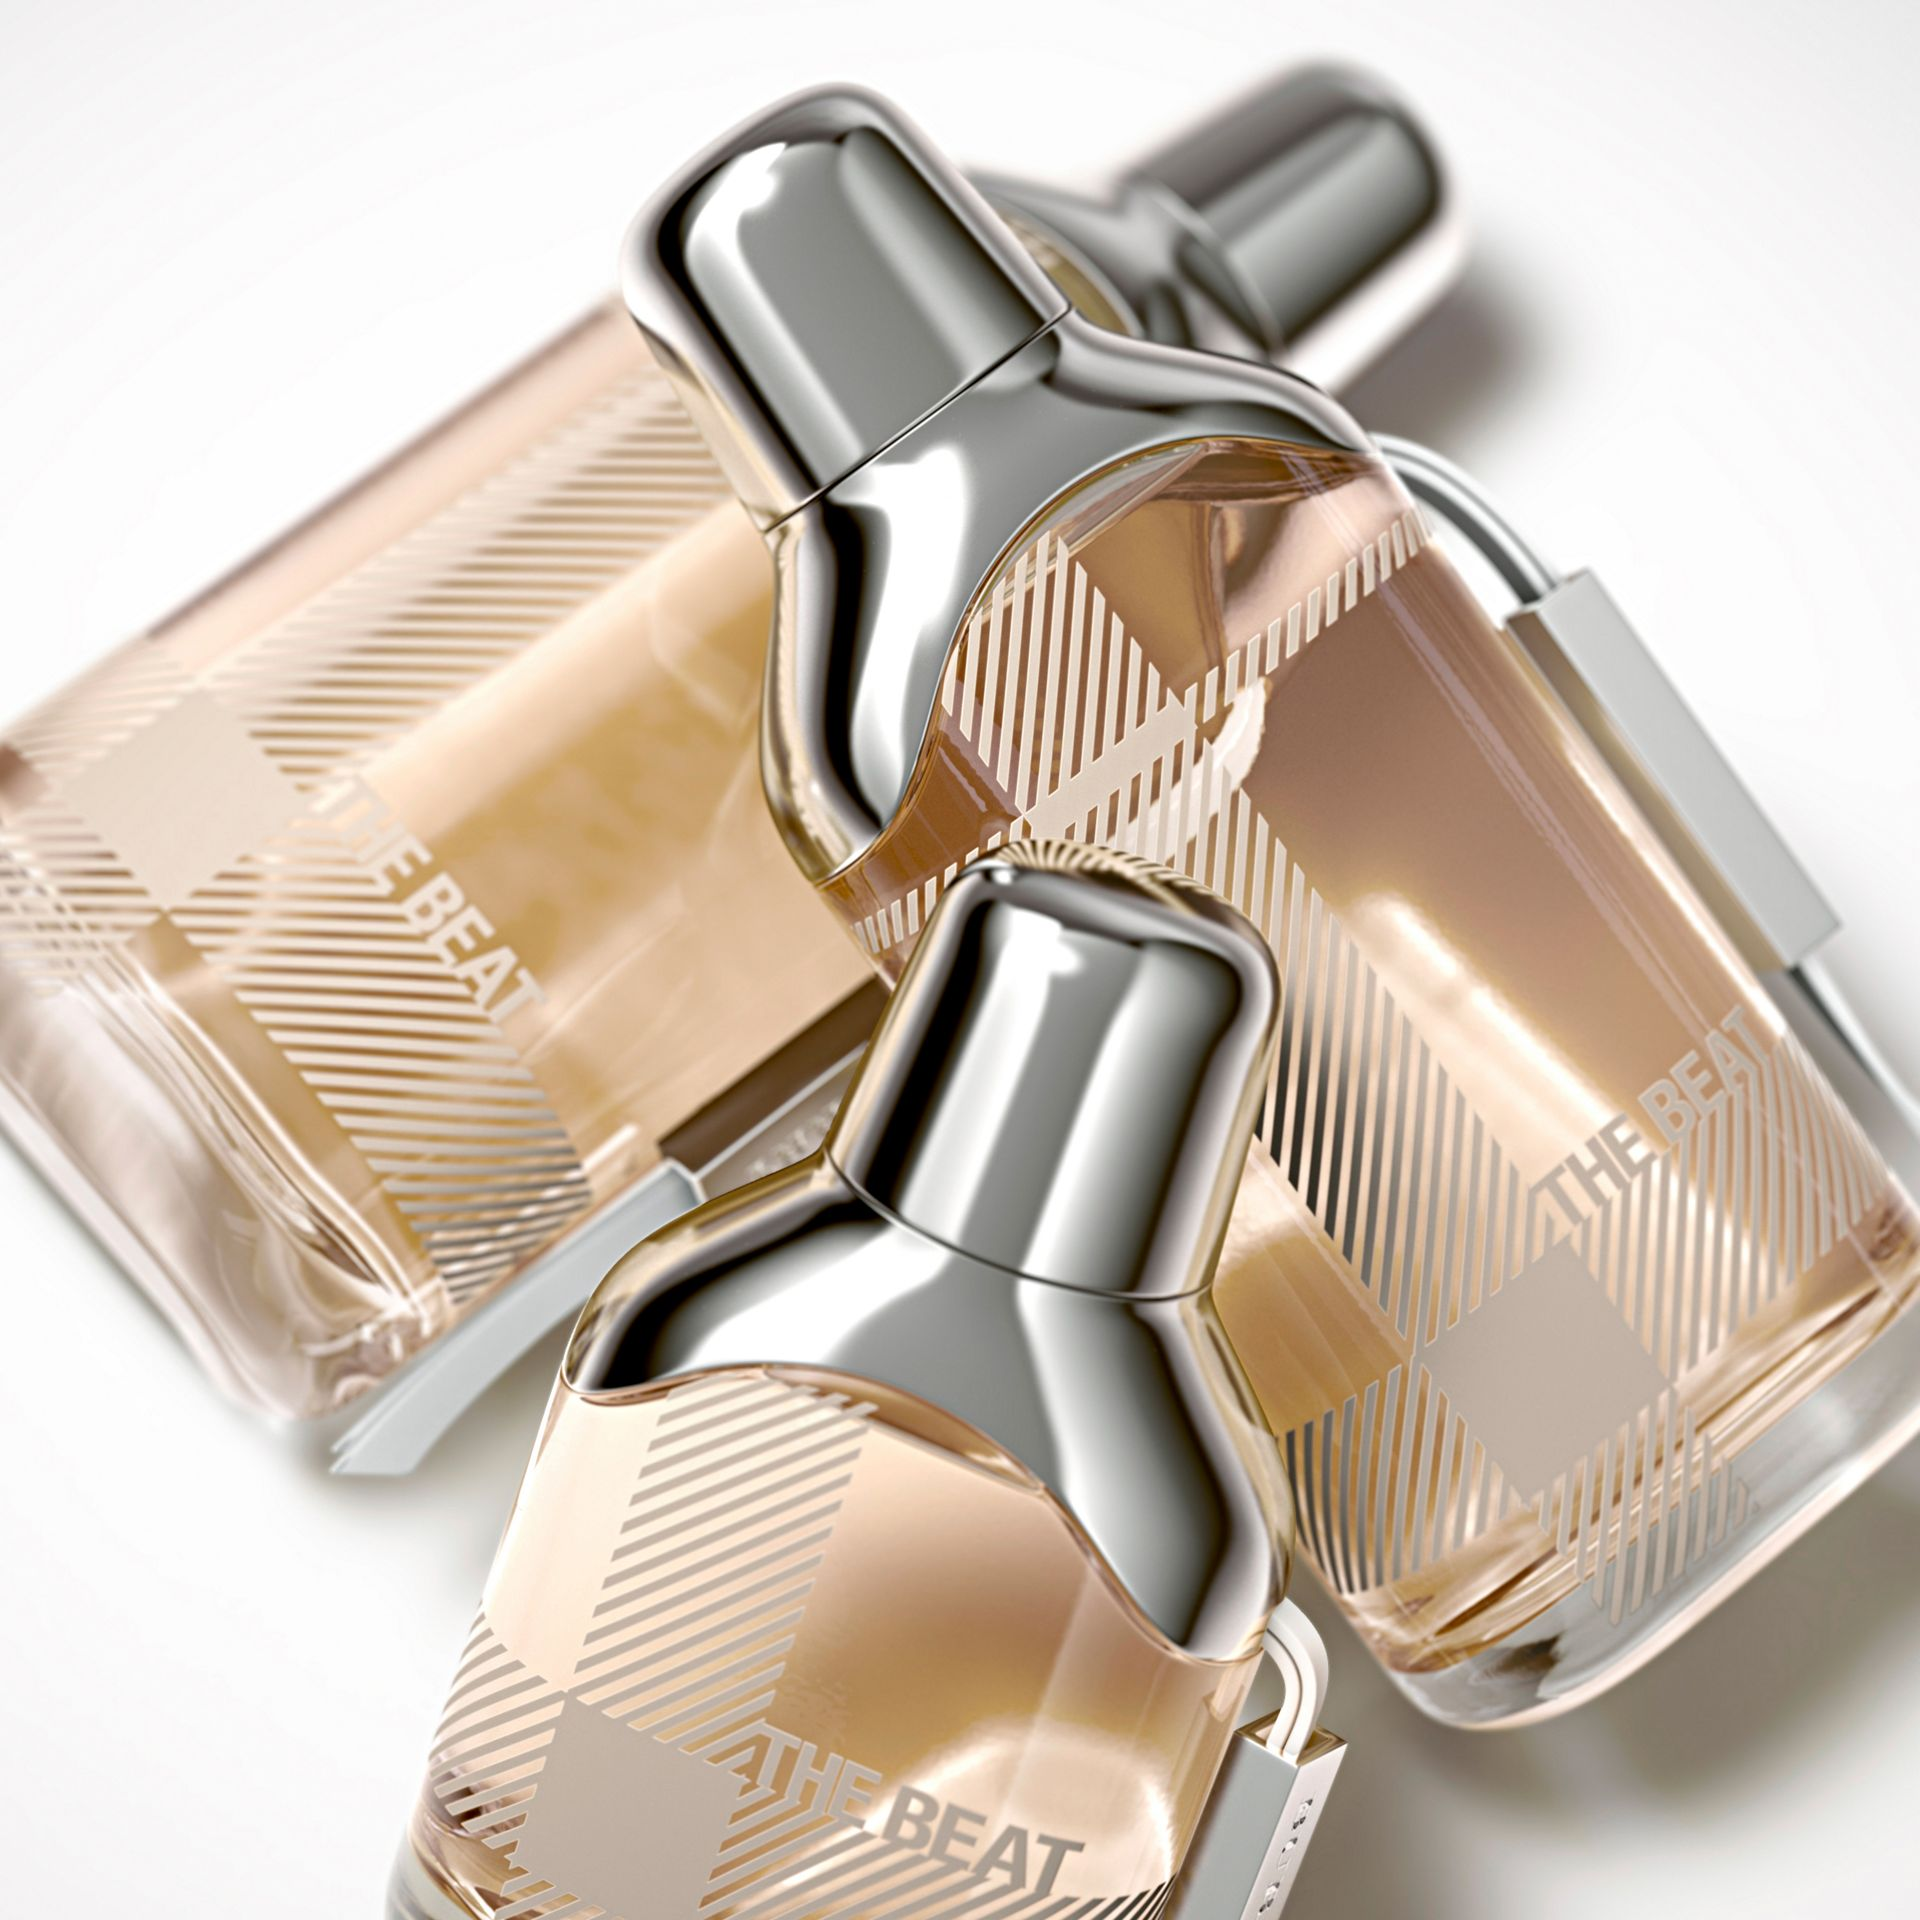 Burberry The Beat Eau de Parfum 75ml - gallery image 2